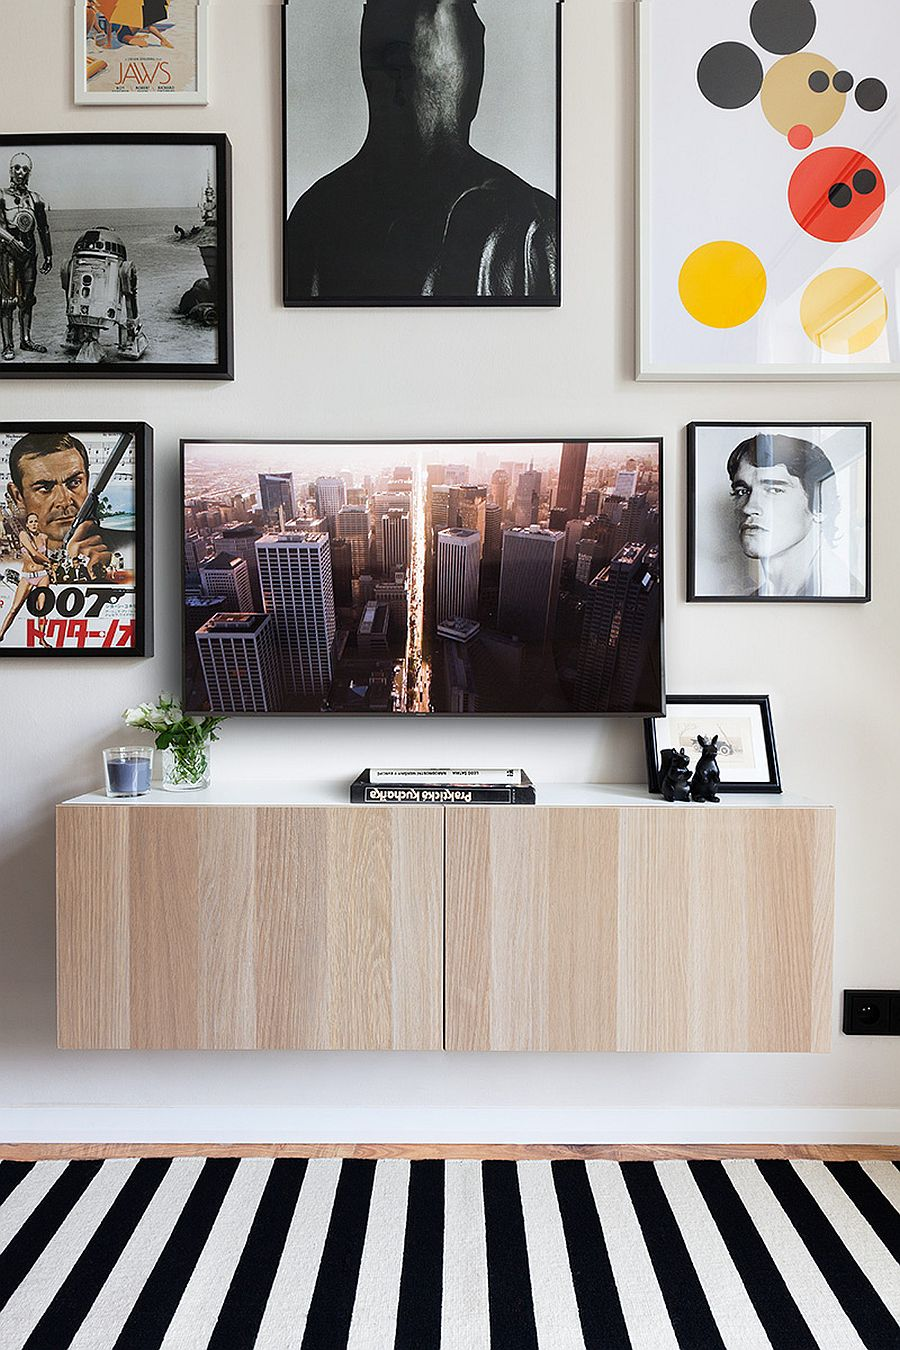 Artwork combined with framed posters and fun prints to create a cool gallery wall